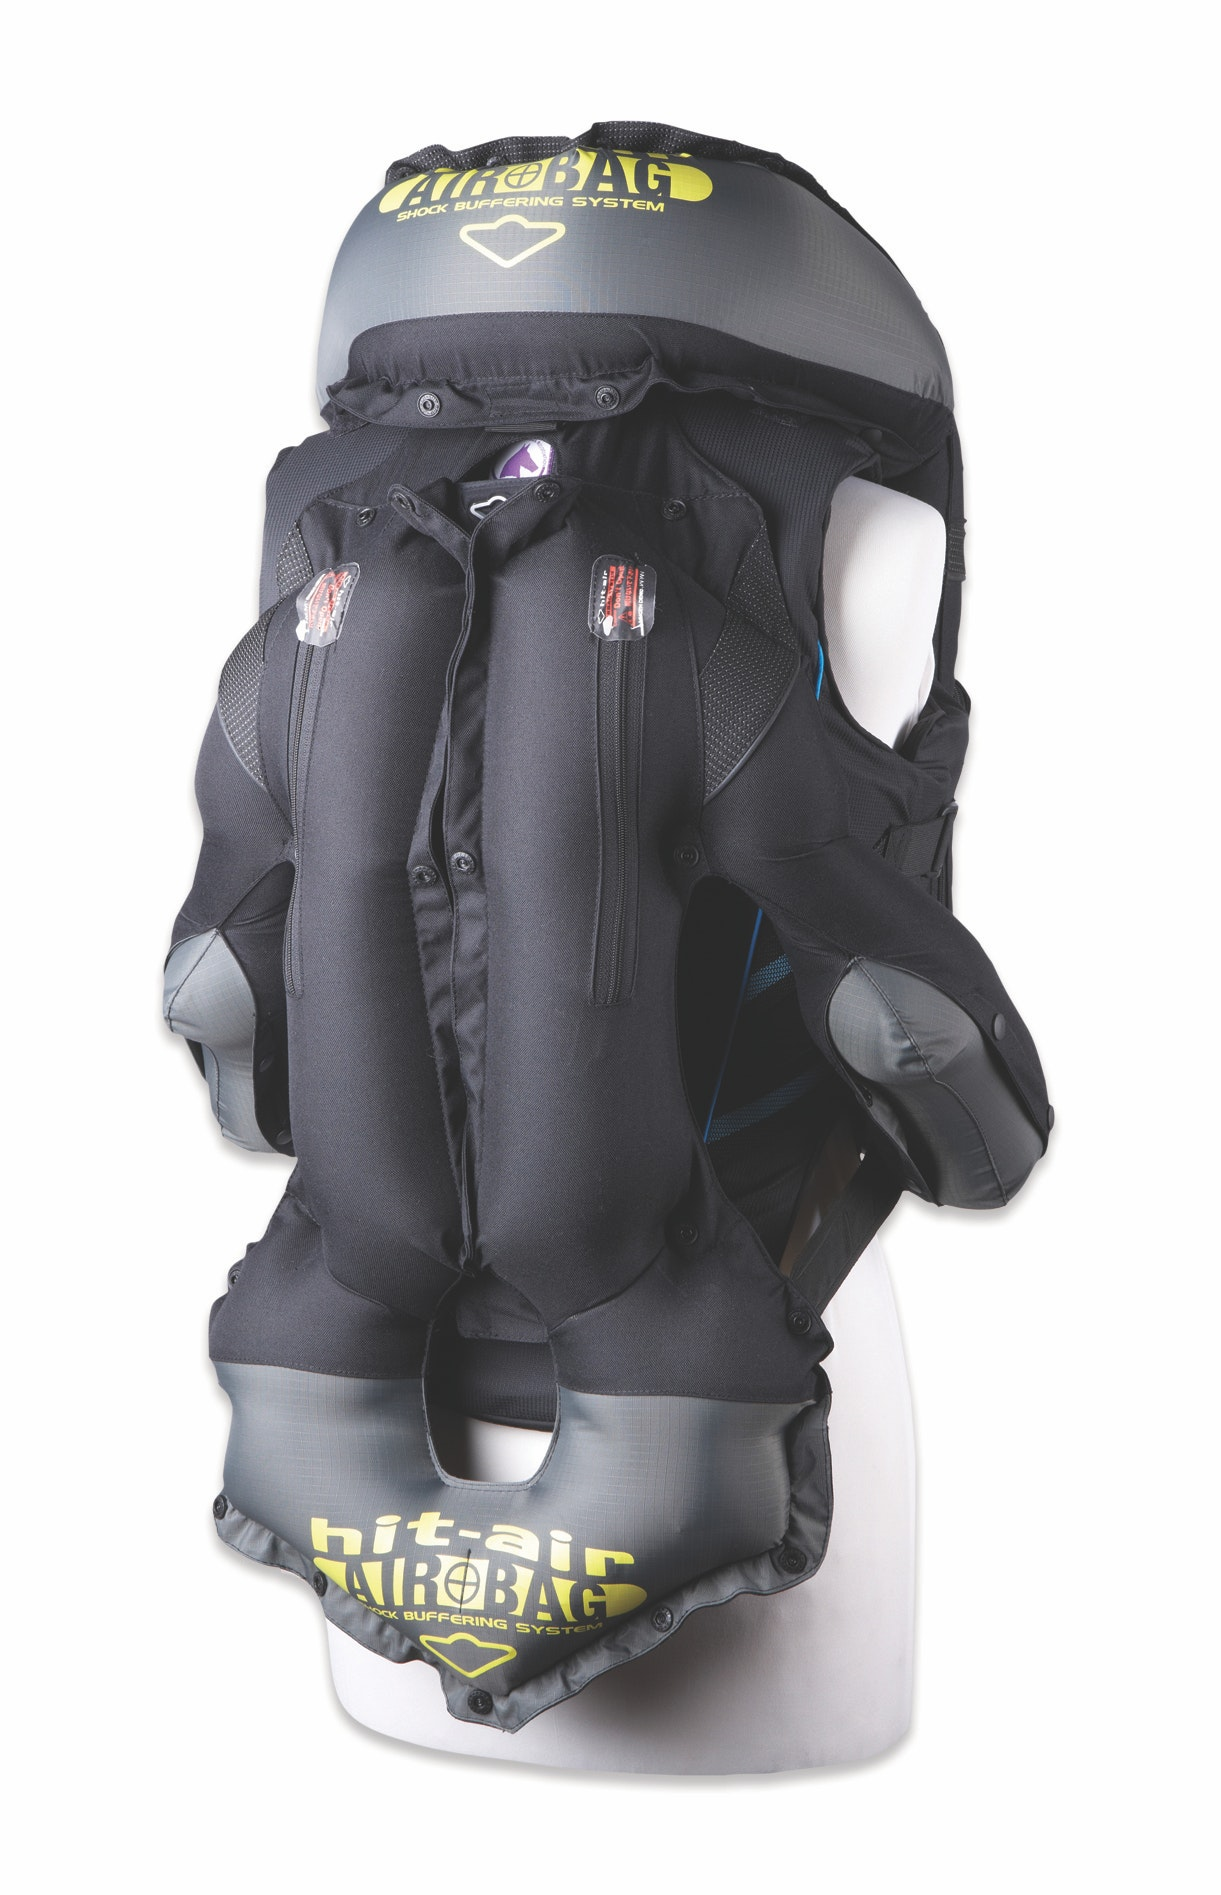 Hit-Air vest, jacket and cap  sweepstakes